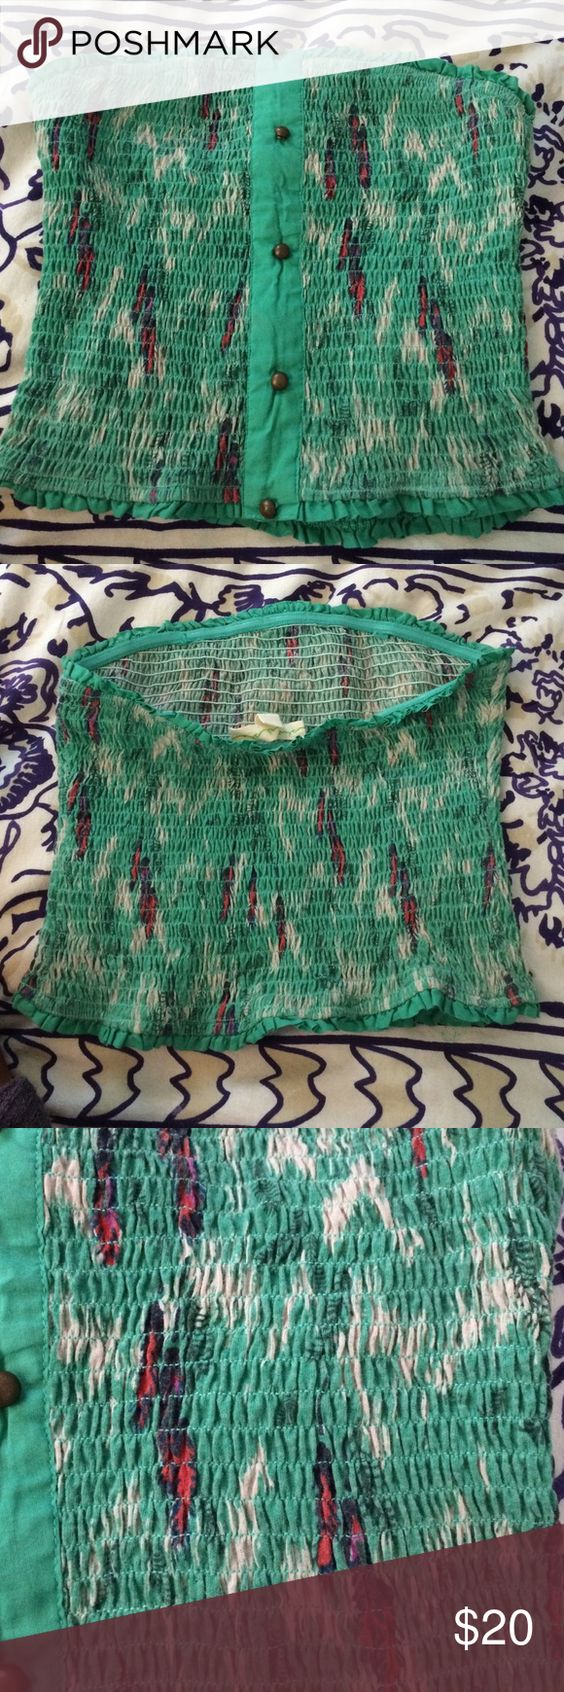 Free People tube top free people green and button detailed tube top Free People Tops